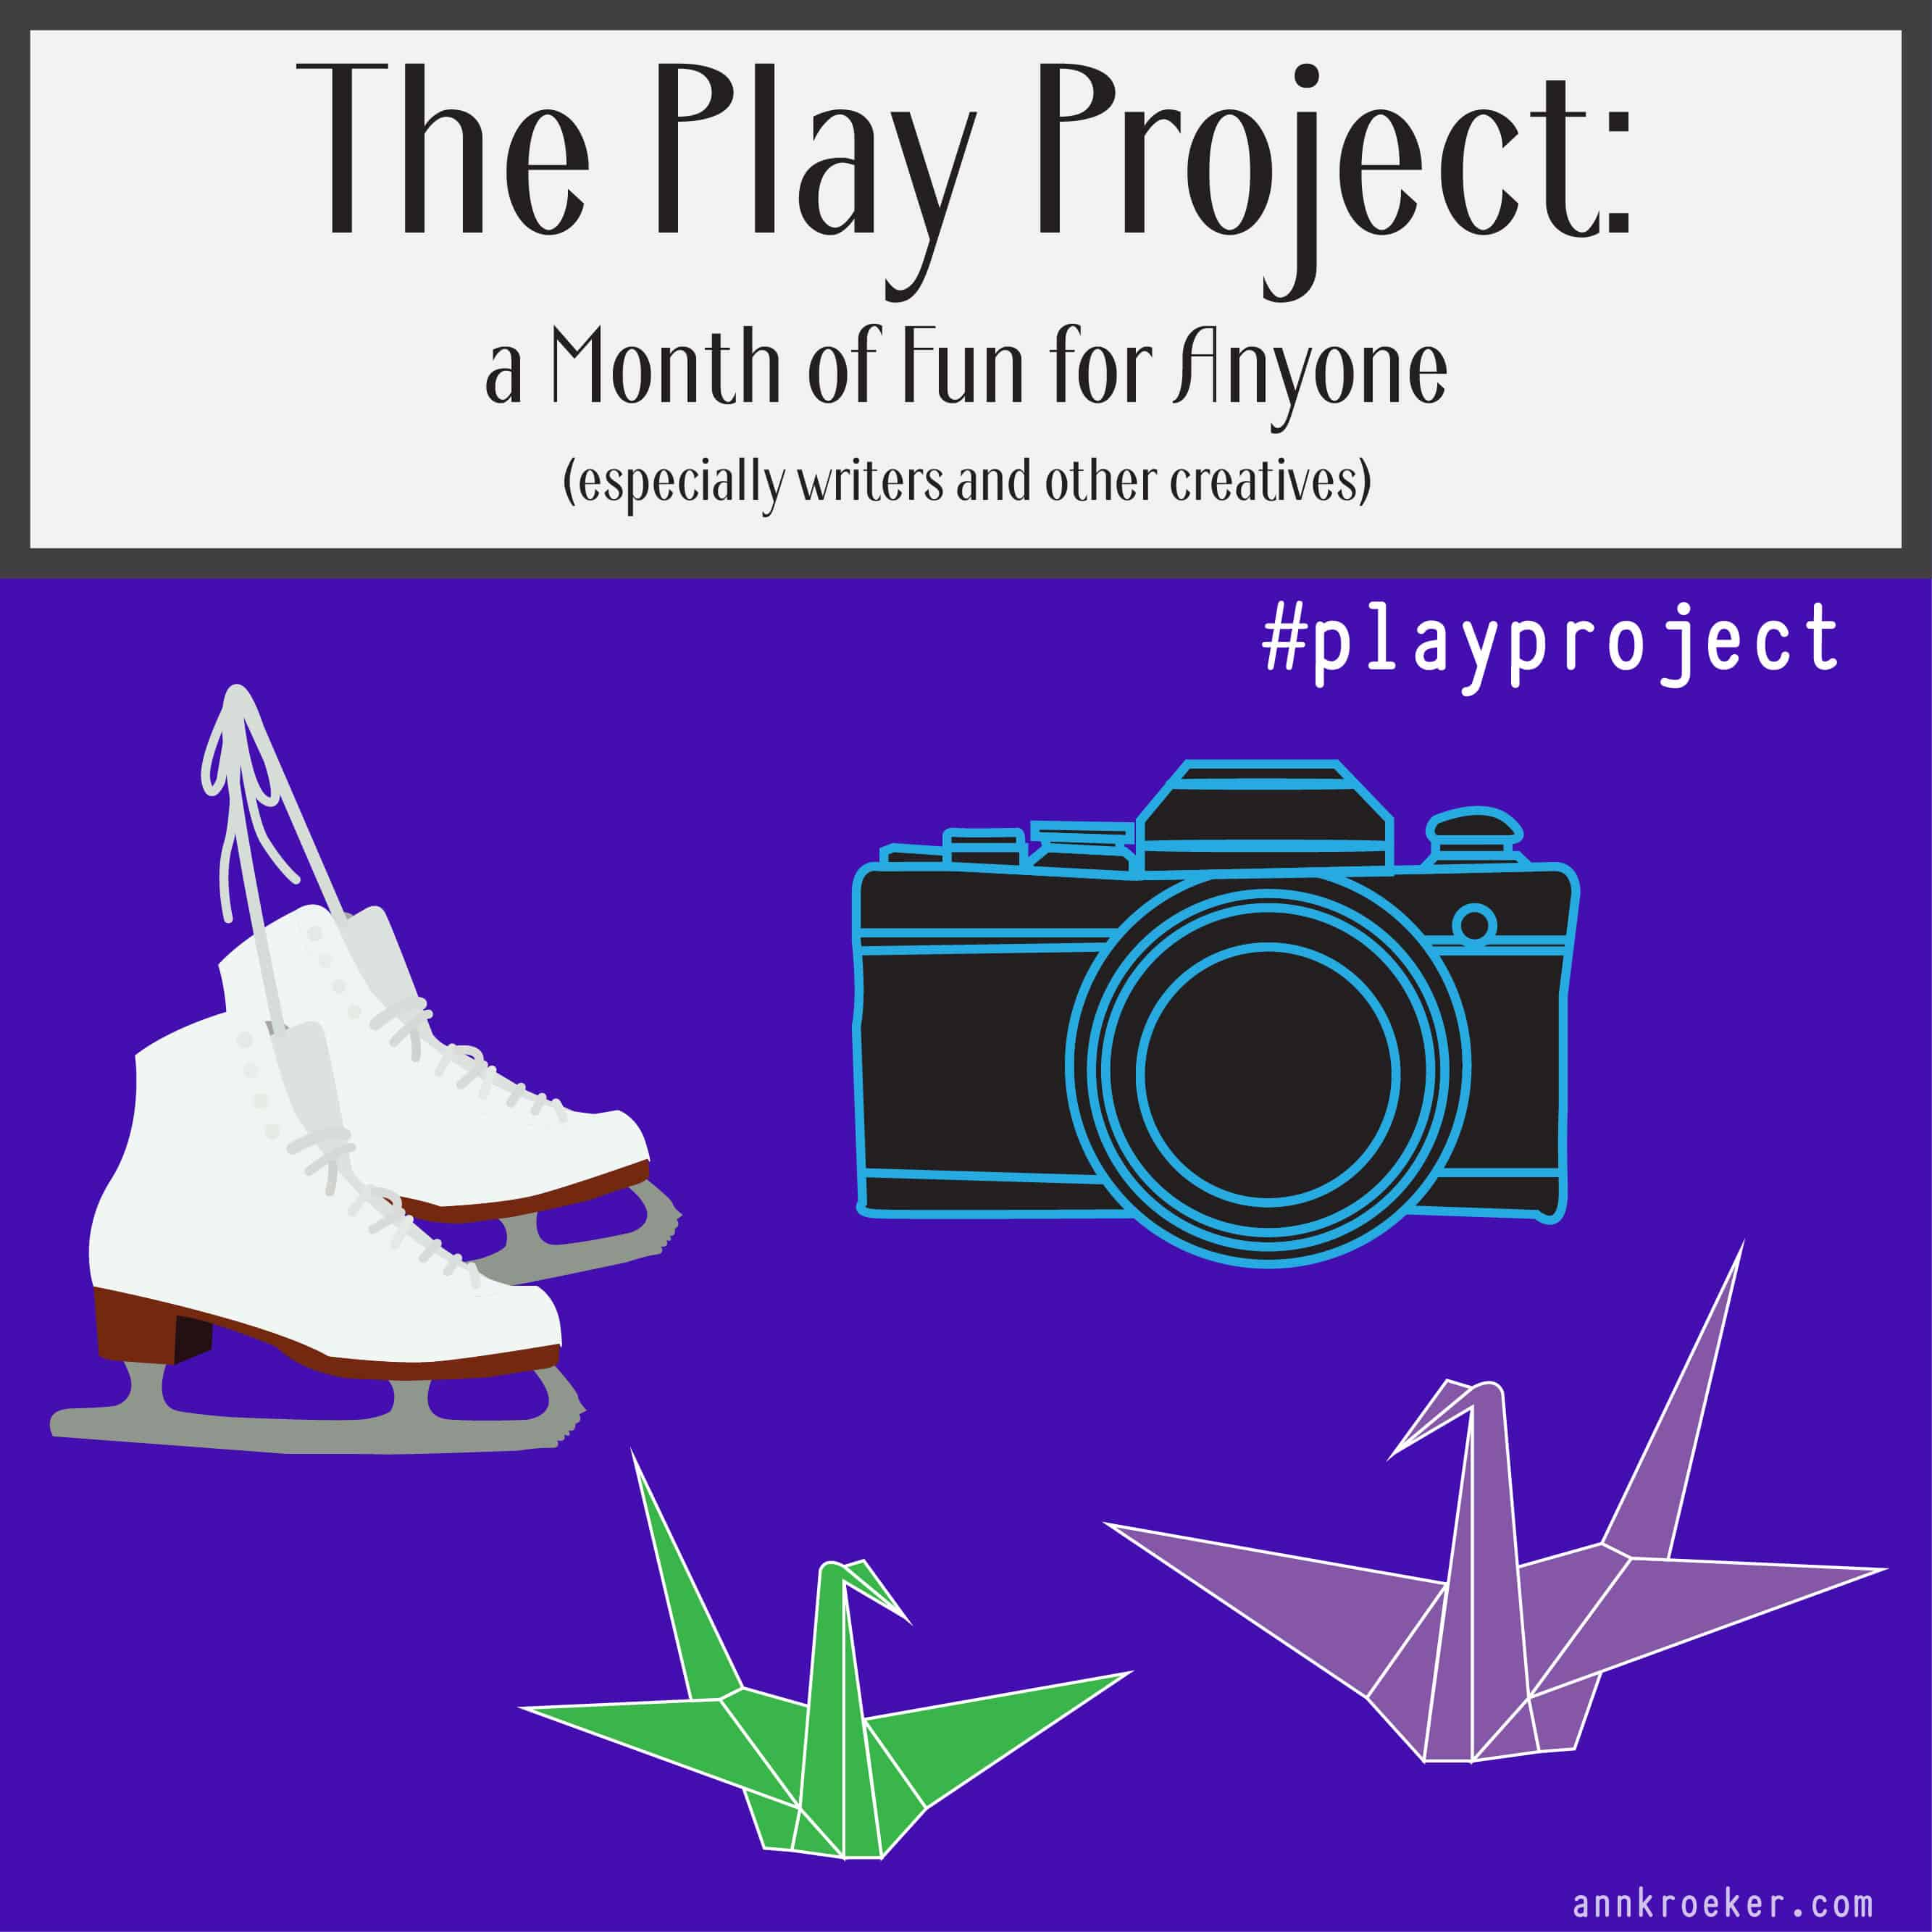 The Play Project - A Month of Fun for Anyone - Instagram sized